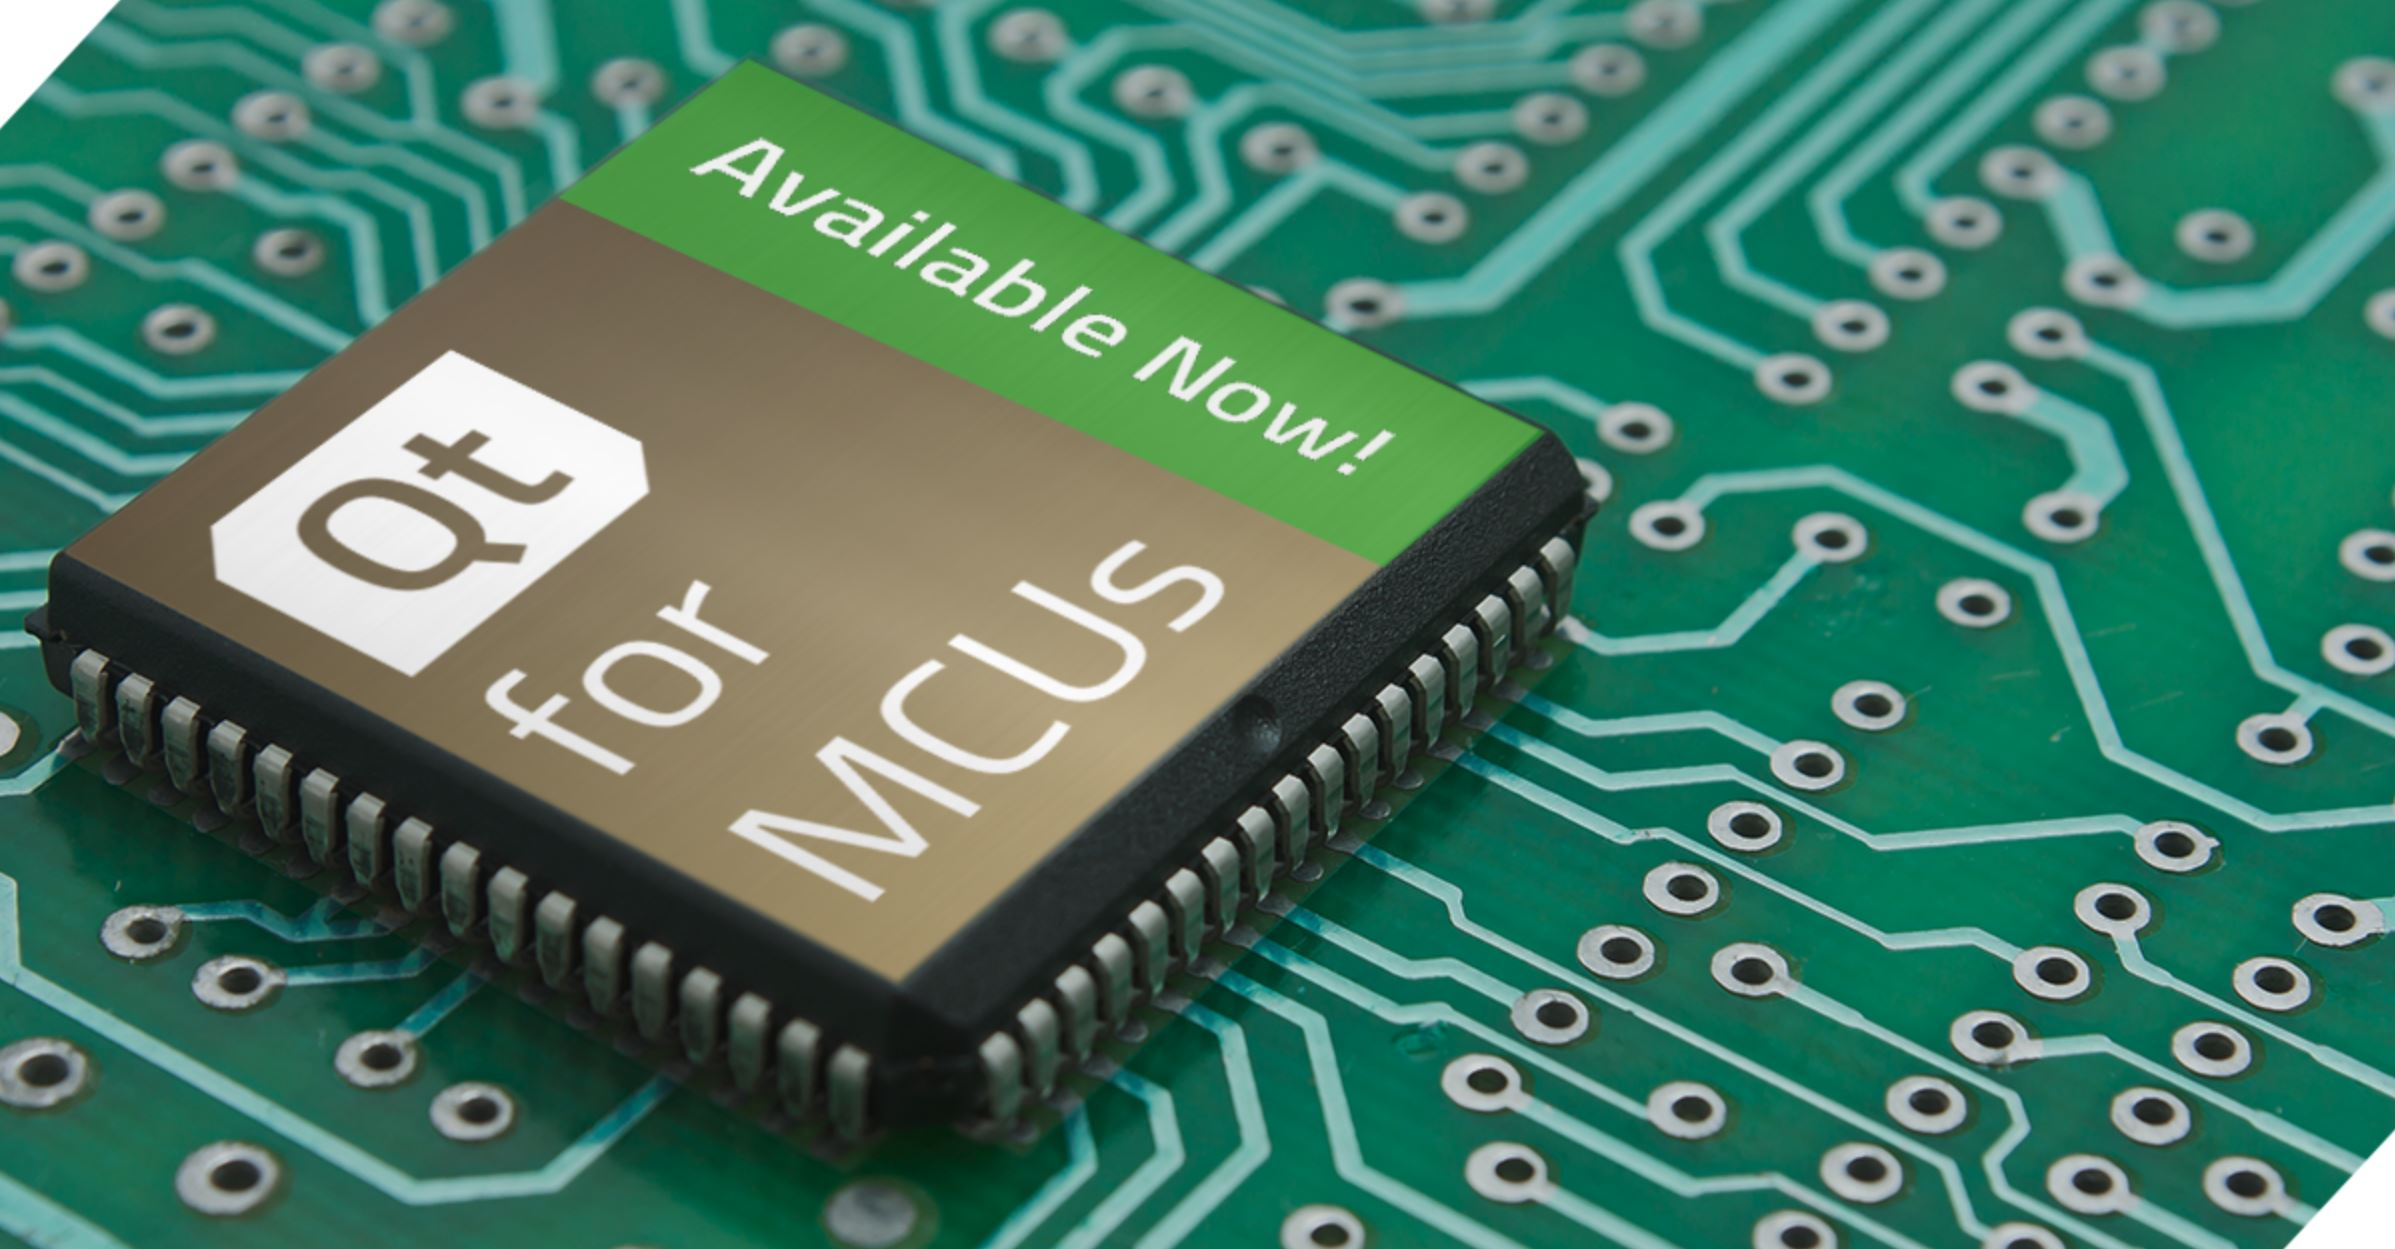 Qt for MCUs 1.3 released